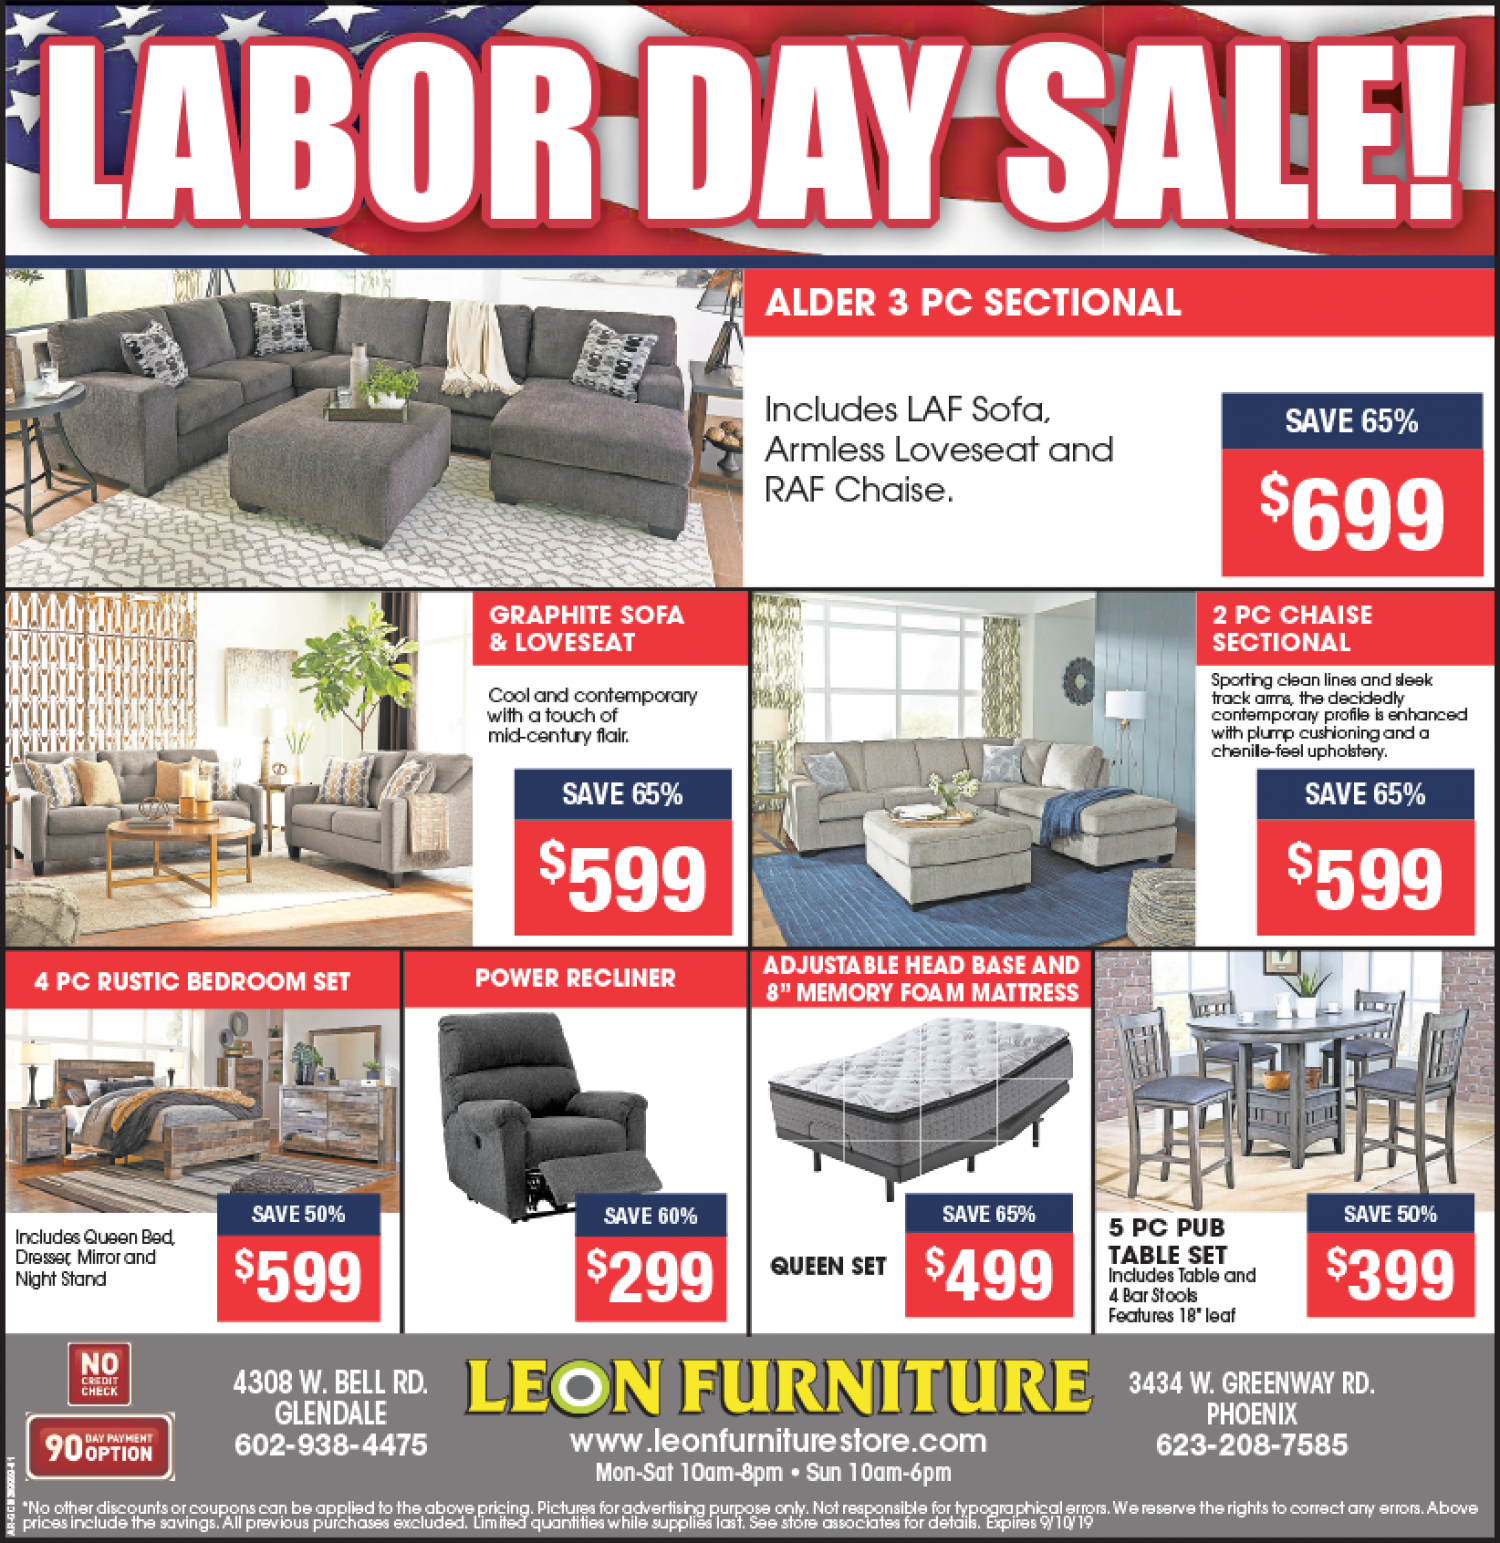 Labour Day Sale at Leon Furniture Store  Infographic